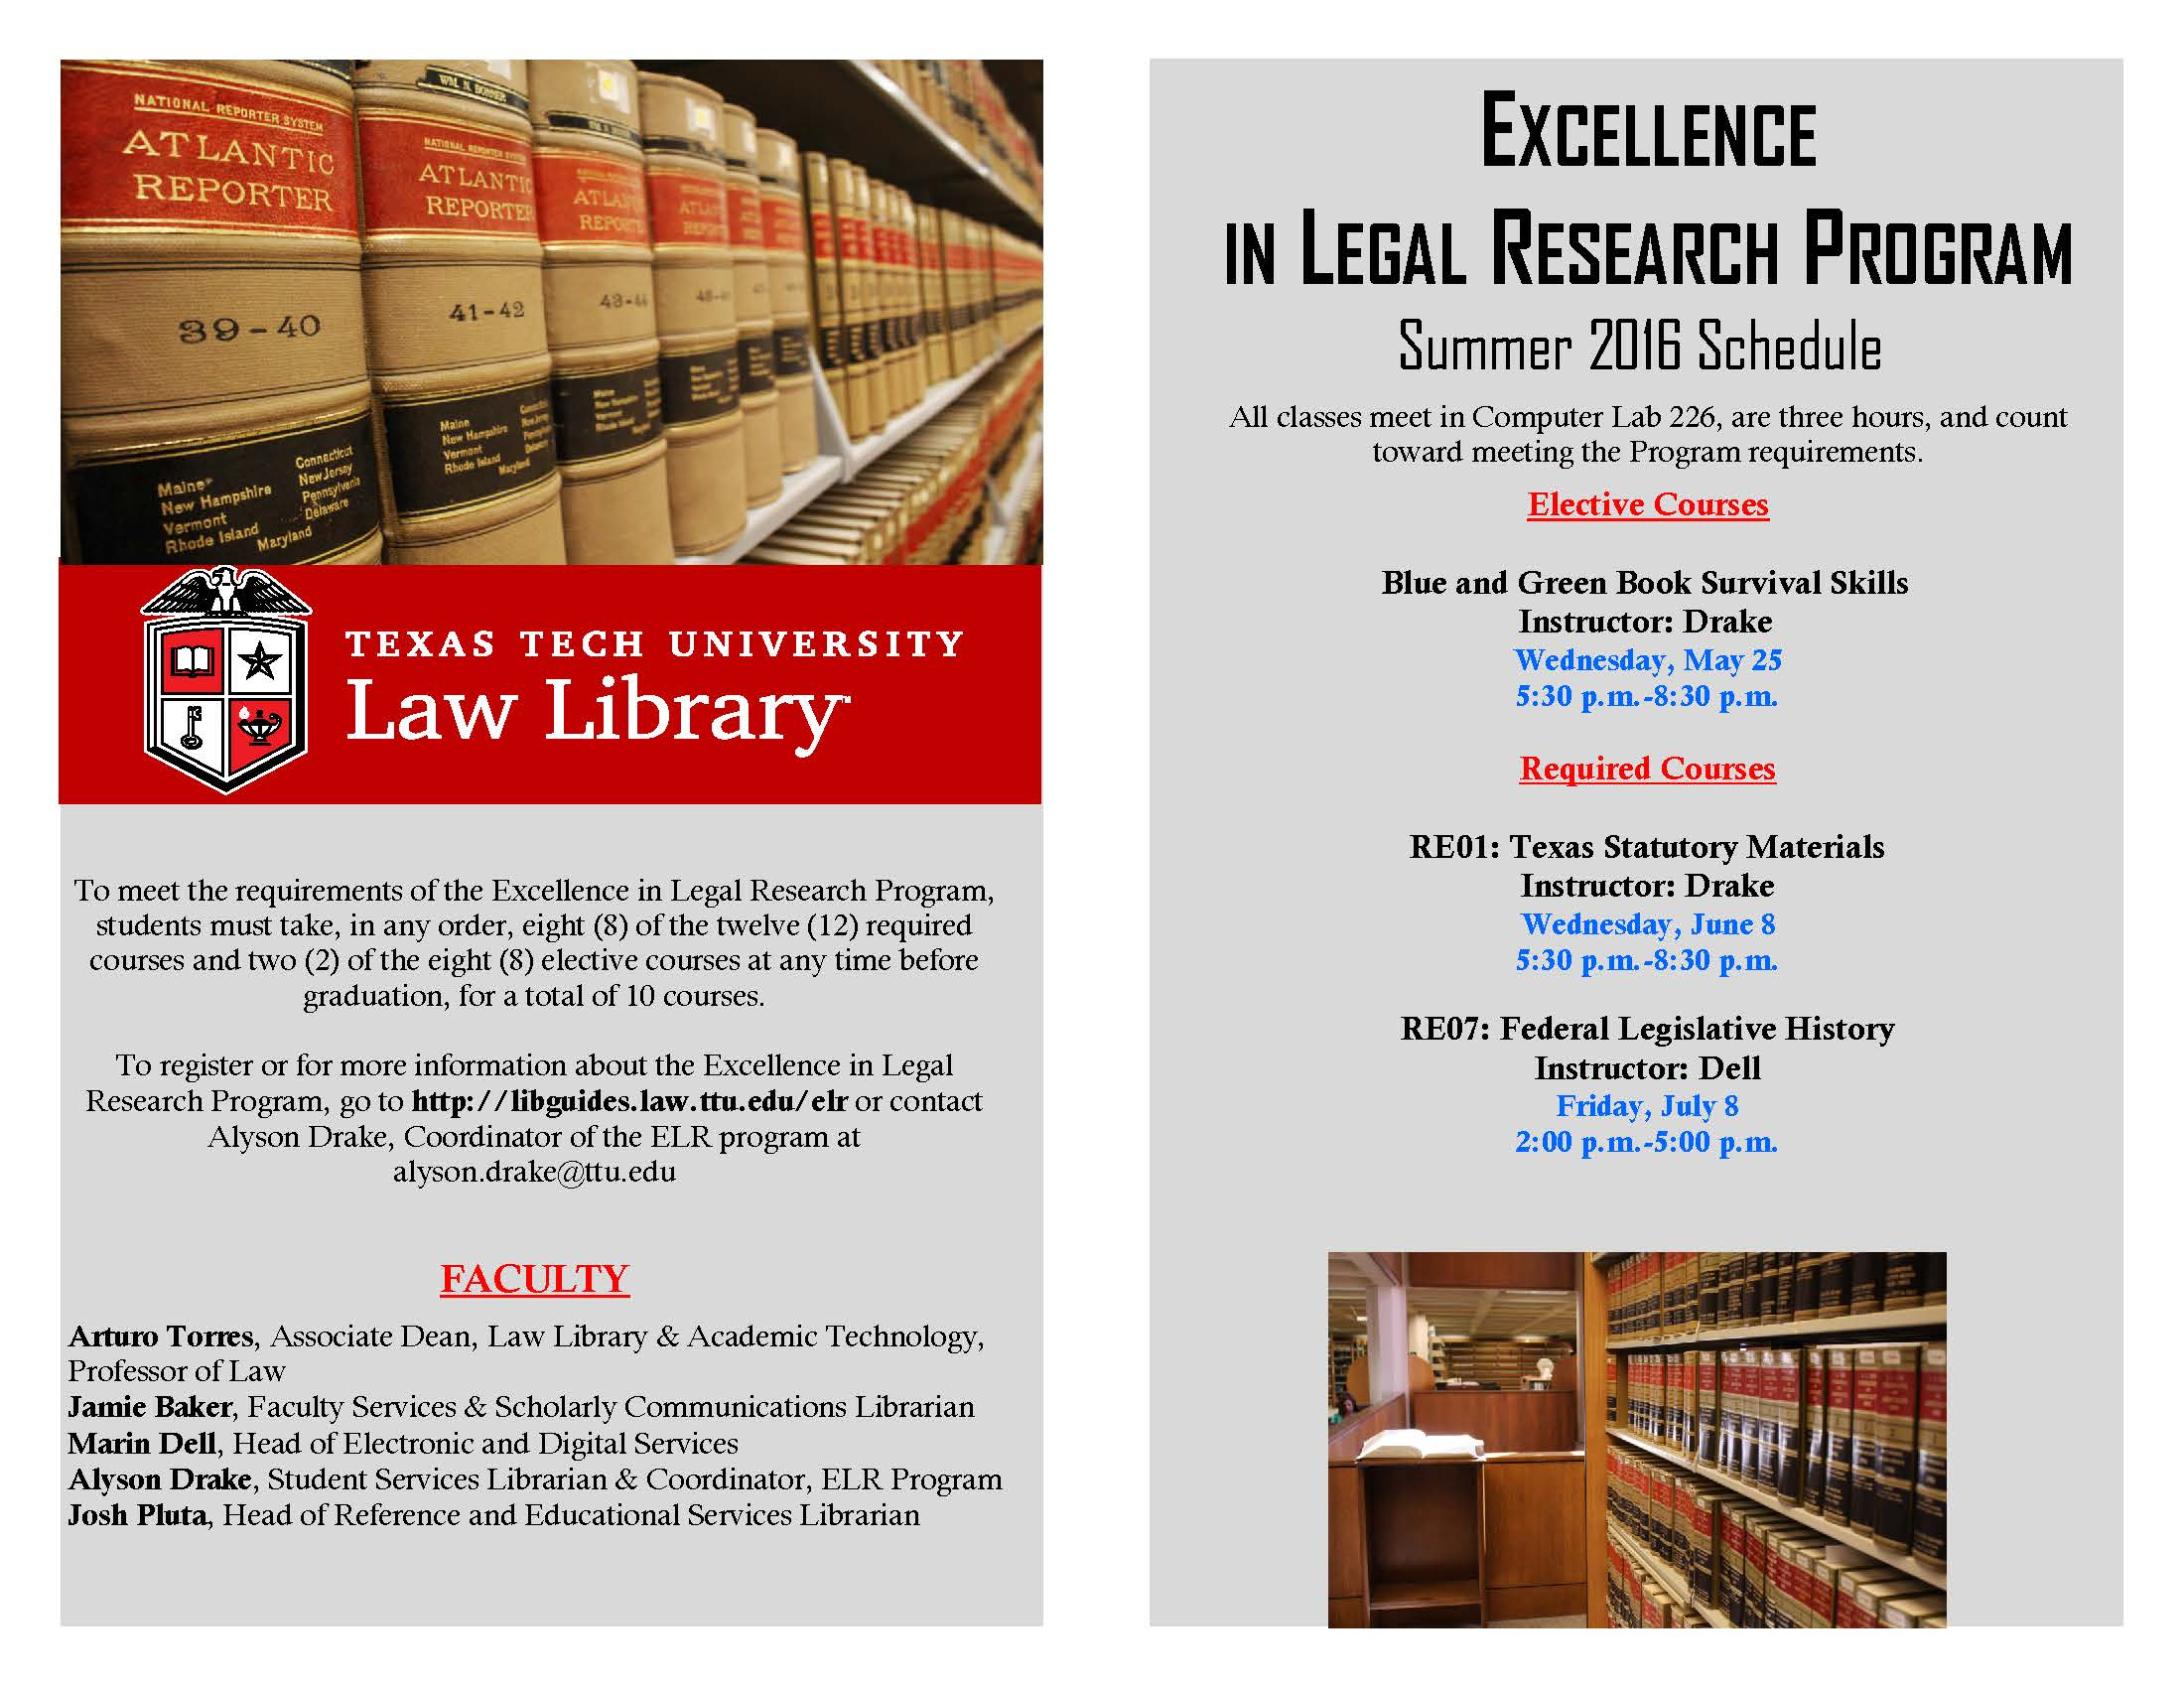 Excellence in Legal Research Summer Classes – The Reporter